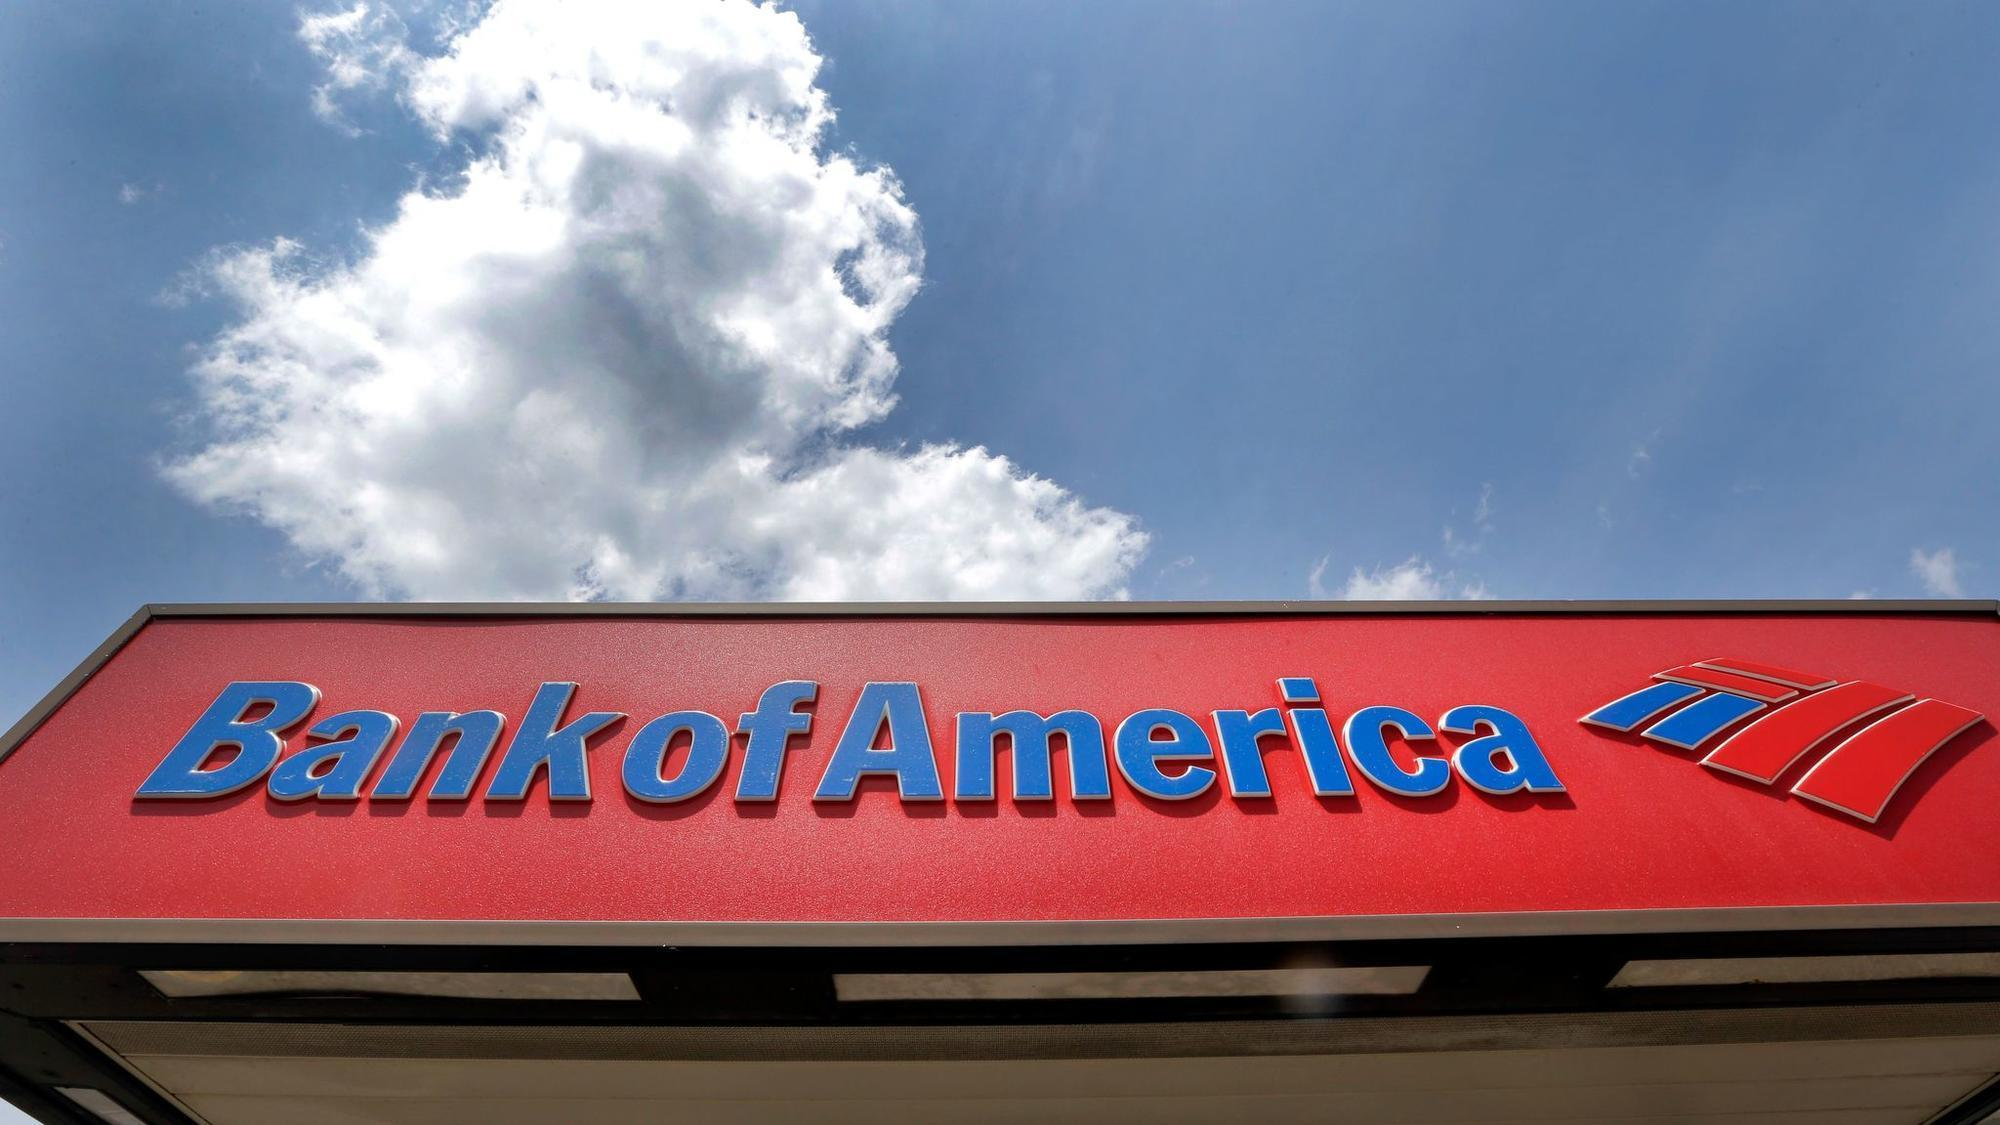 Bank Of America Ends Free Checking Option Causing Customer Uproar Chicago Tribune